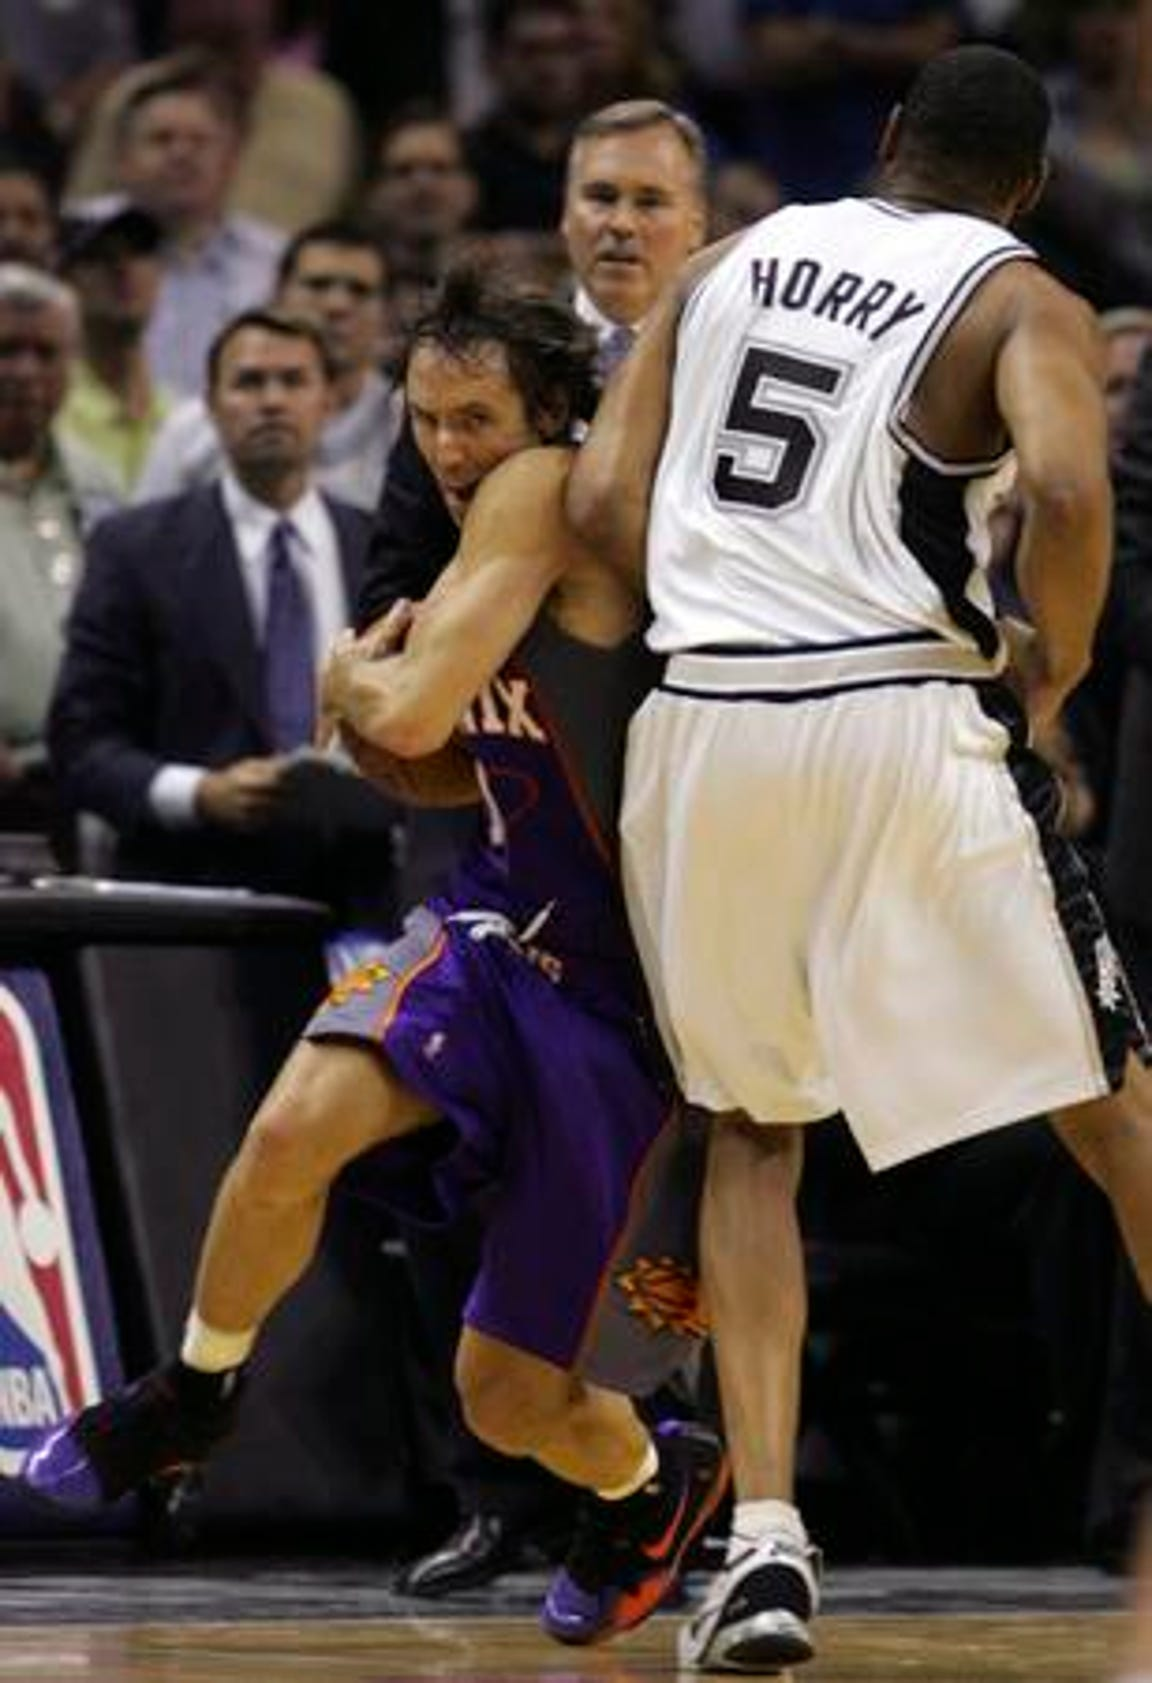 San Antonio Spurs' Robert Horry hip checked Phoenix Suns' Steve Nash during a 2007 playoff game. The resulting fracas resulted in the ejection of two key Suns players and likely cost Phoenix a shot at an NBA title.